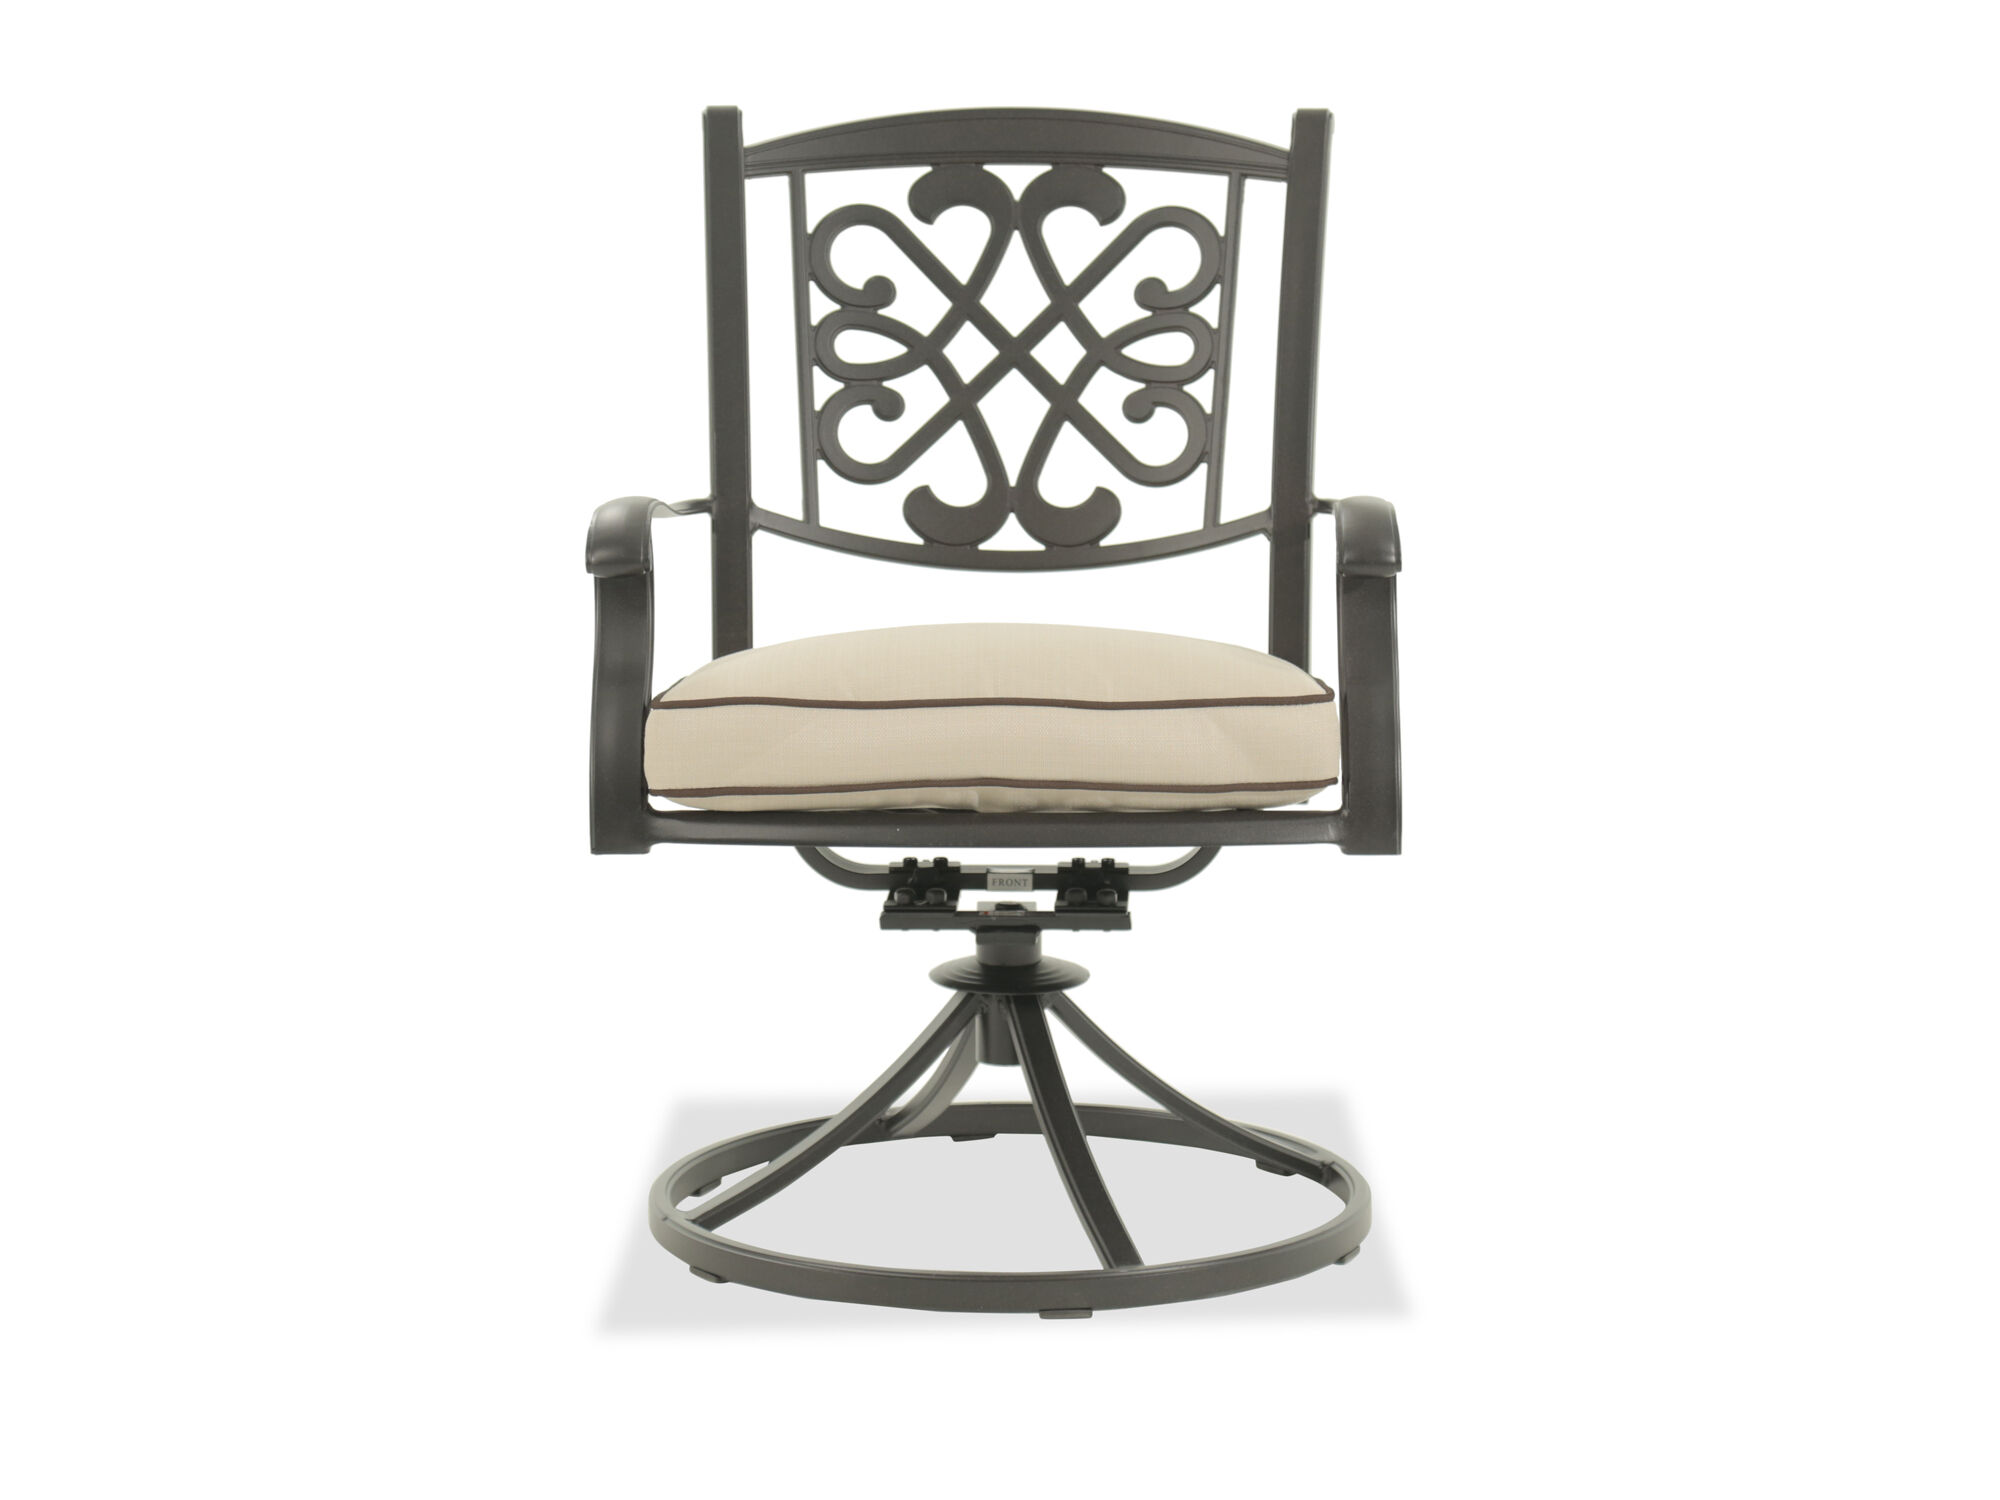 Scrollwork Aluminum Swivel Chair in Dark Brown ...  sc 1 st  Mathis Brothers & Patio Chairs Outdoor Chairs u0026 Seating | Mathis Brothers